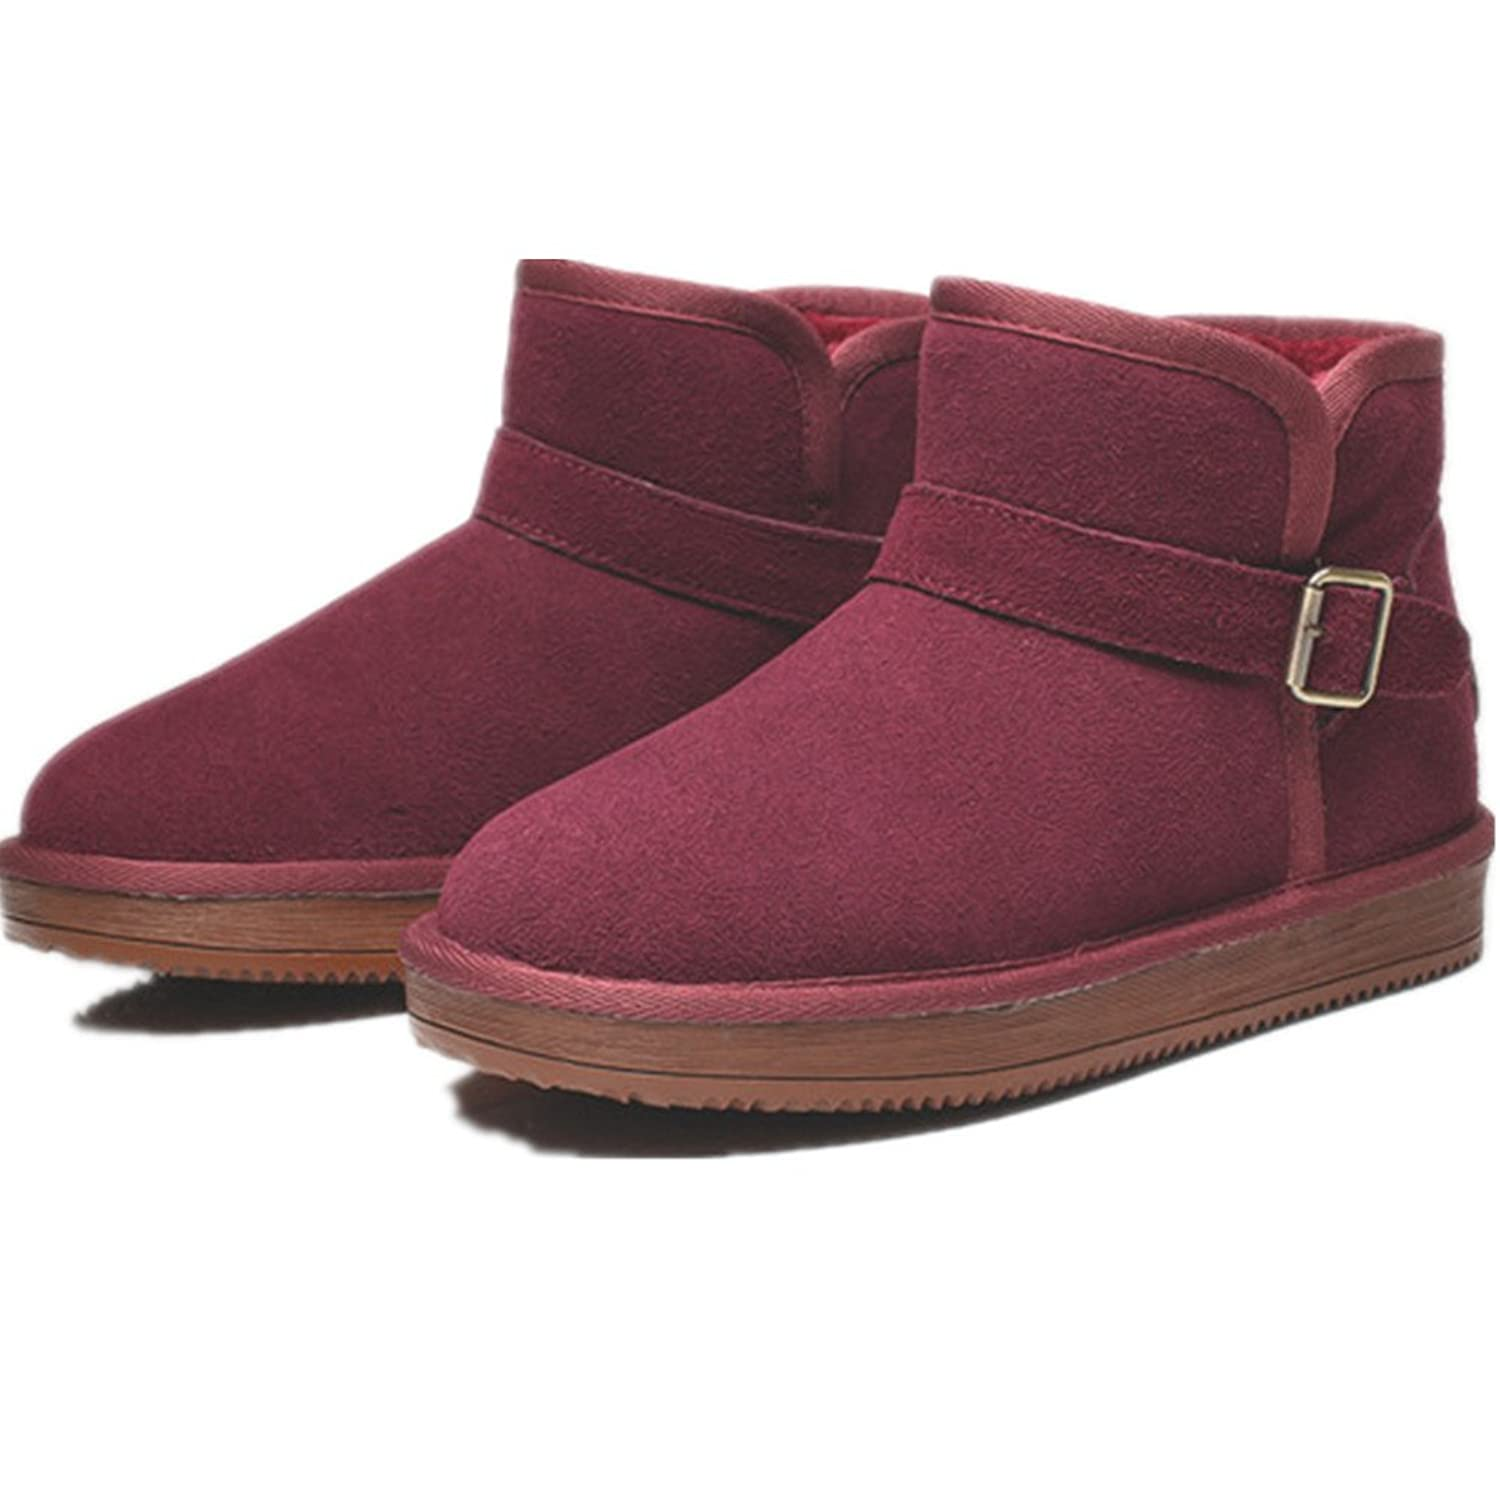 Fur Covered Womens Snow Boots Fully Fur Lined Waterproof Winter Snow Boots with Buckles Wine Red